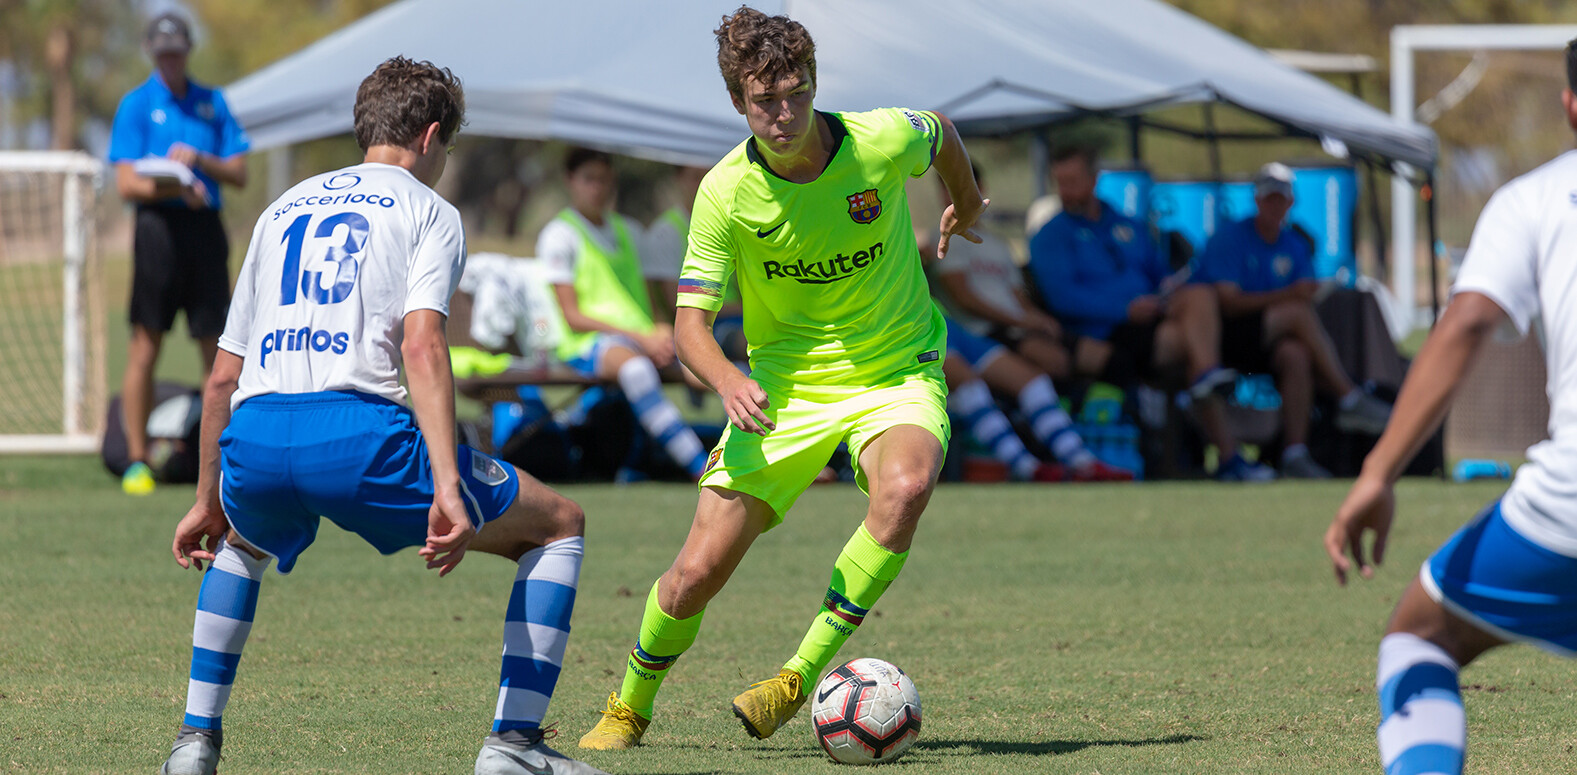 Barca Residency Academys Matthew Hoppe on his was to a goal